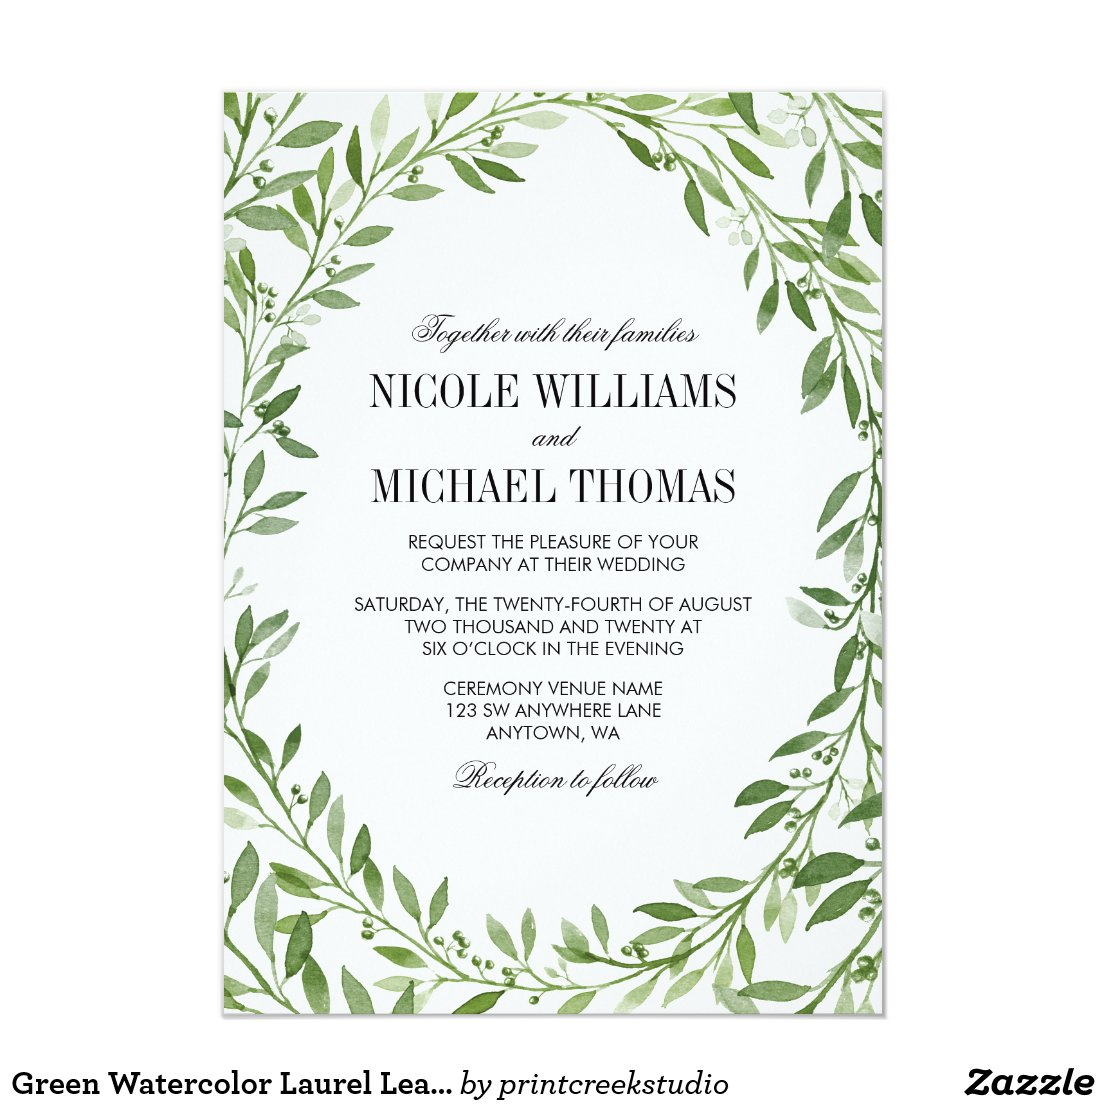 Greenery Wedding Invitation with Watercolor Laurel Wreath